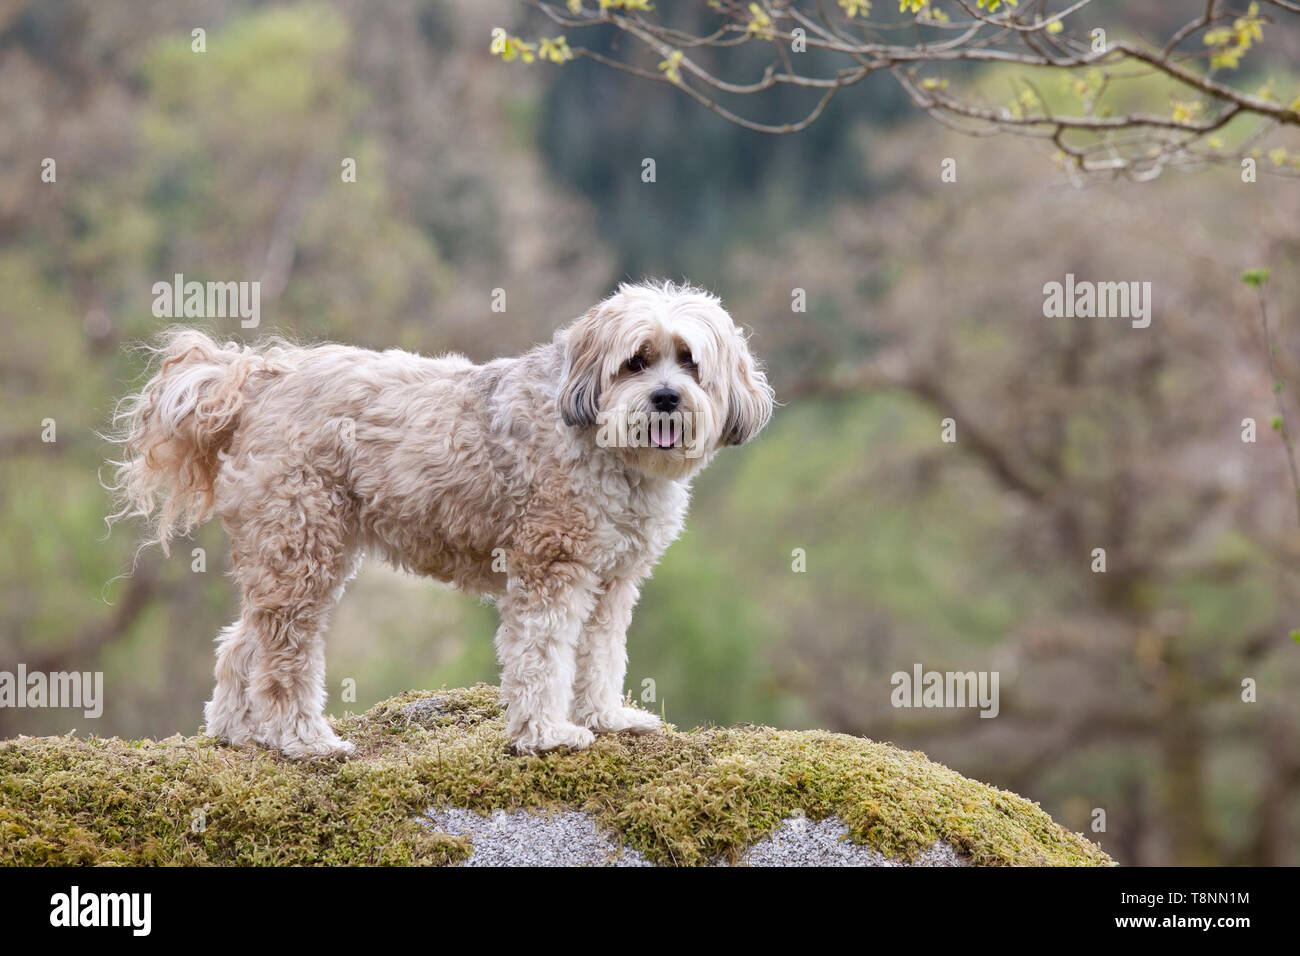 Tibetan Terrier dog standing on a rock - Stock Image